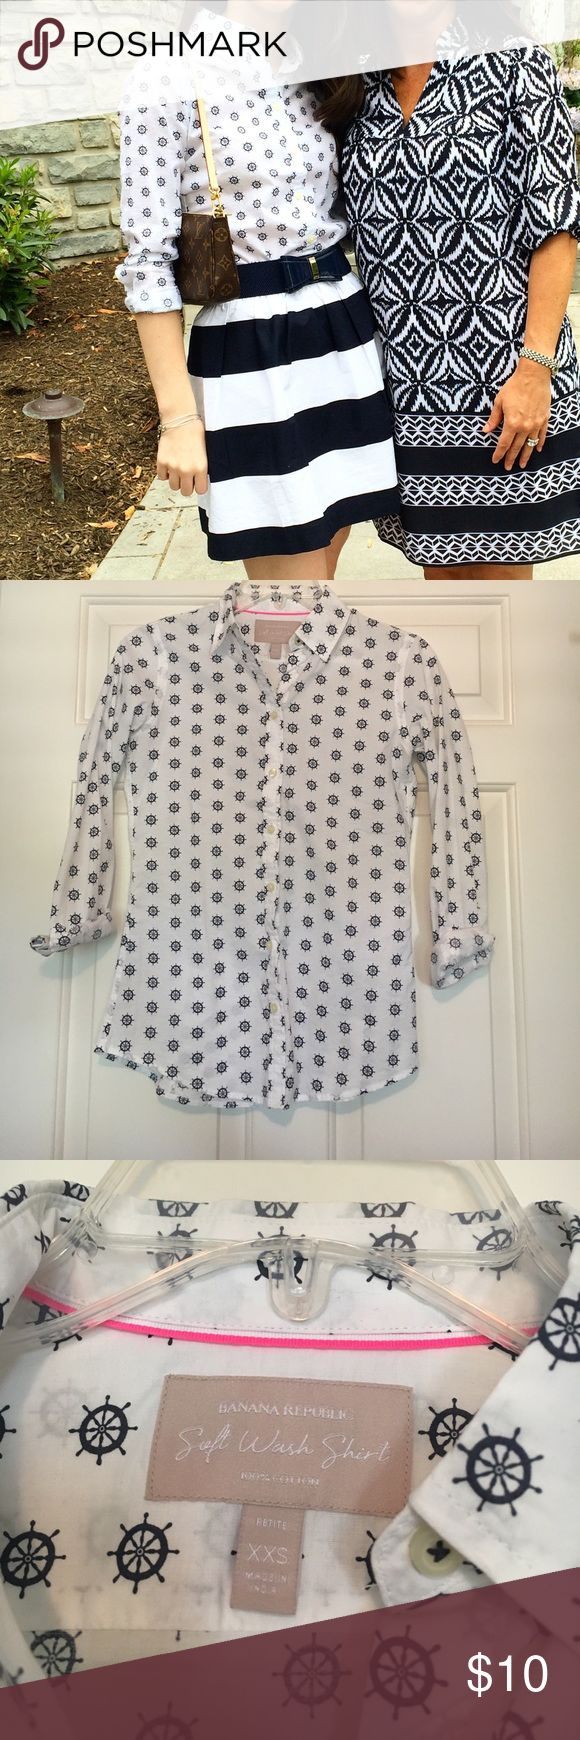 Banana Republic Ship Wheel Button Down XXS. Great Condition! Looks adorable with the navy Lilly Belt listed (will bundle!) Price Negotiable Banana Republic Tops Button Down Shirts